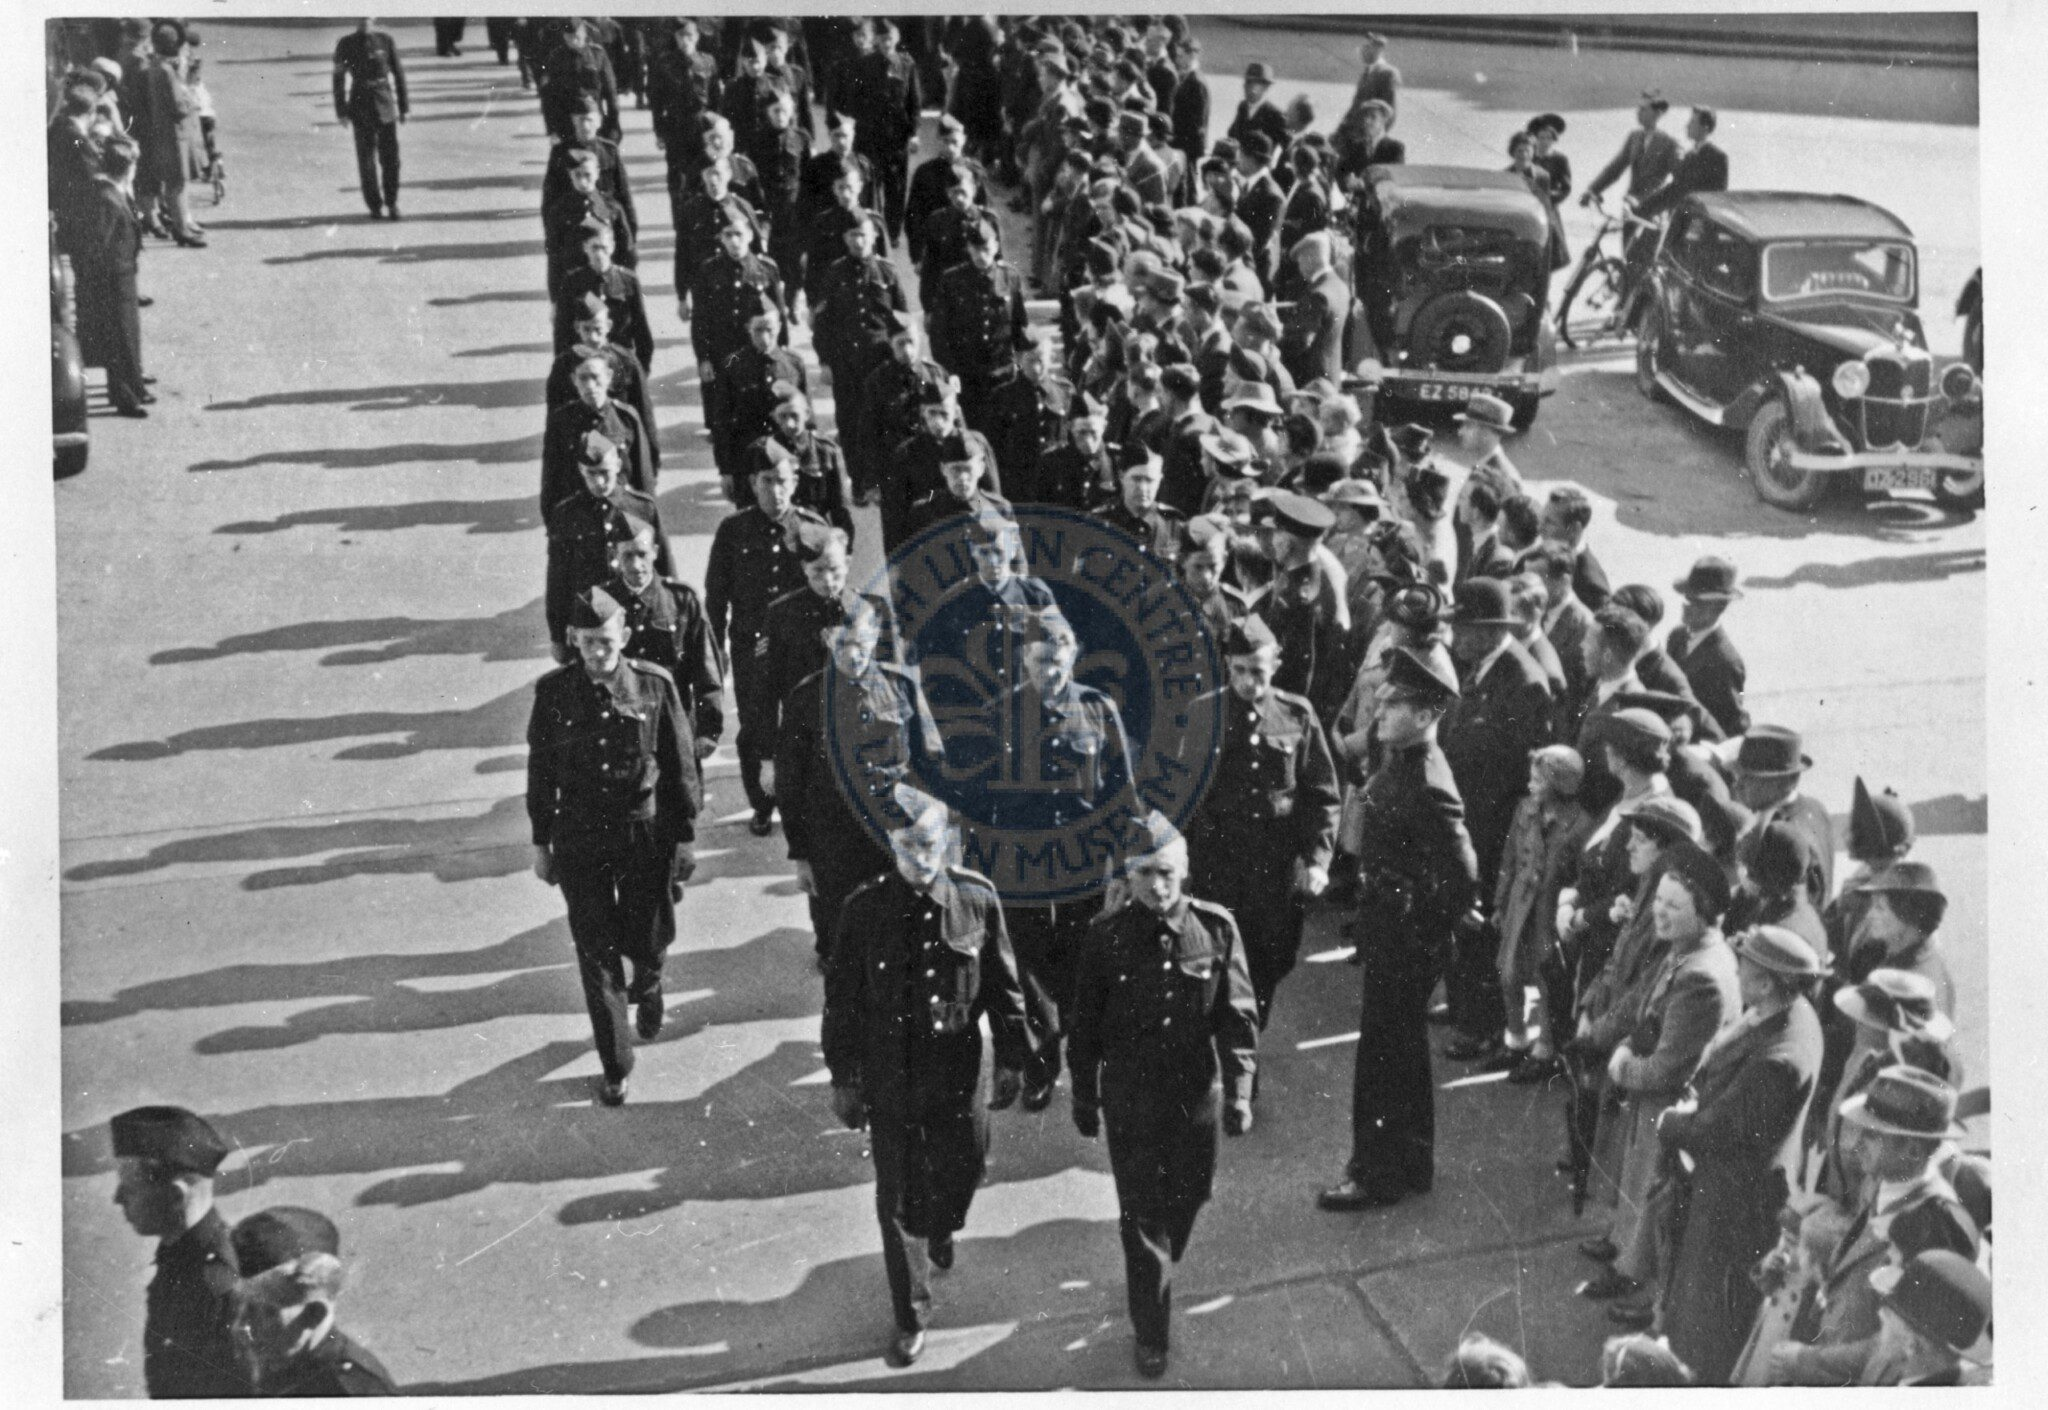 A Local Defence Volunteers unit parading through Market Square in 1940.